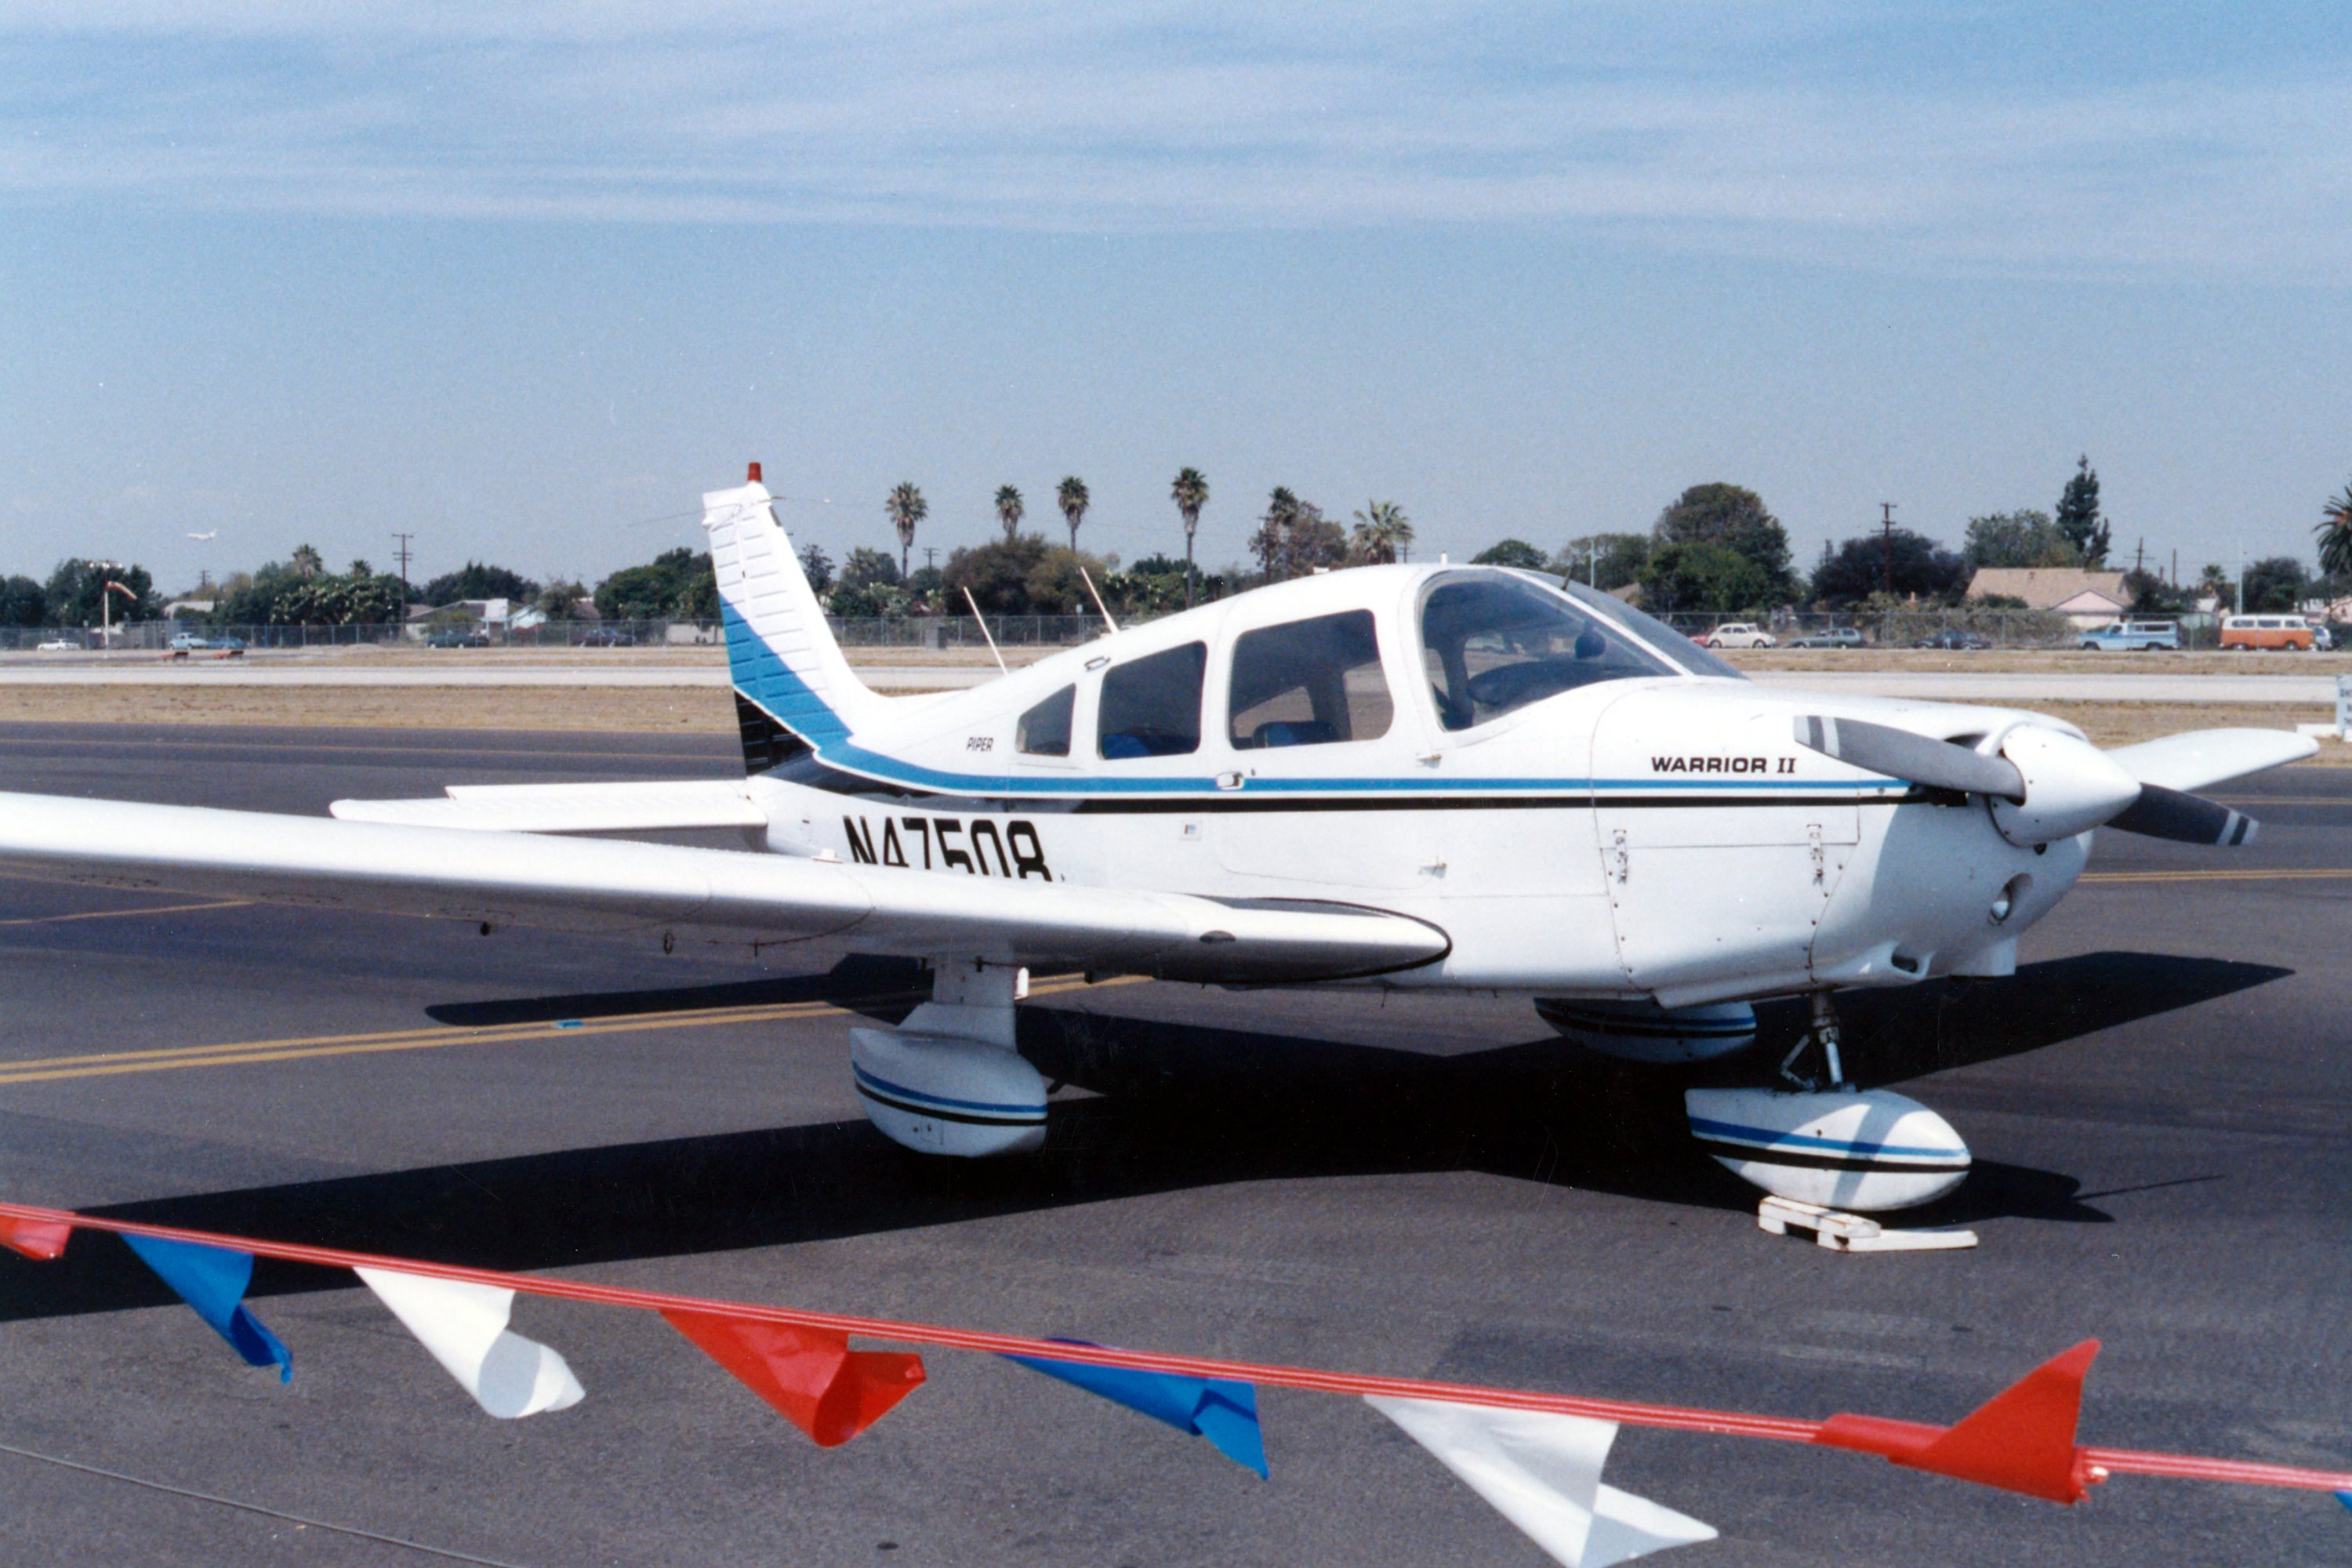 Piper PA-28-161 Warrior II four-seat low-wing monoplane